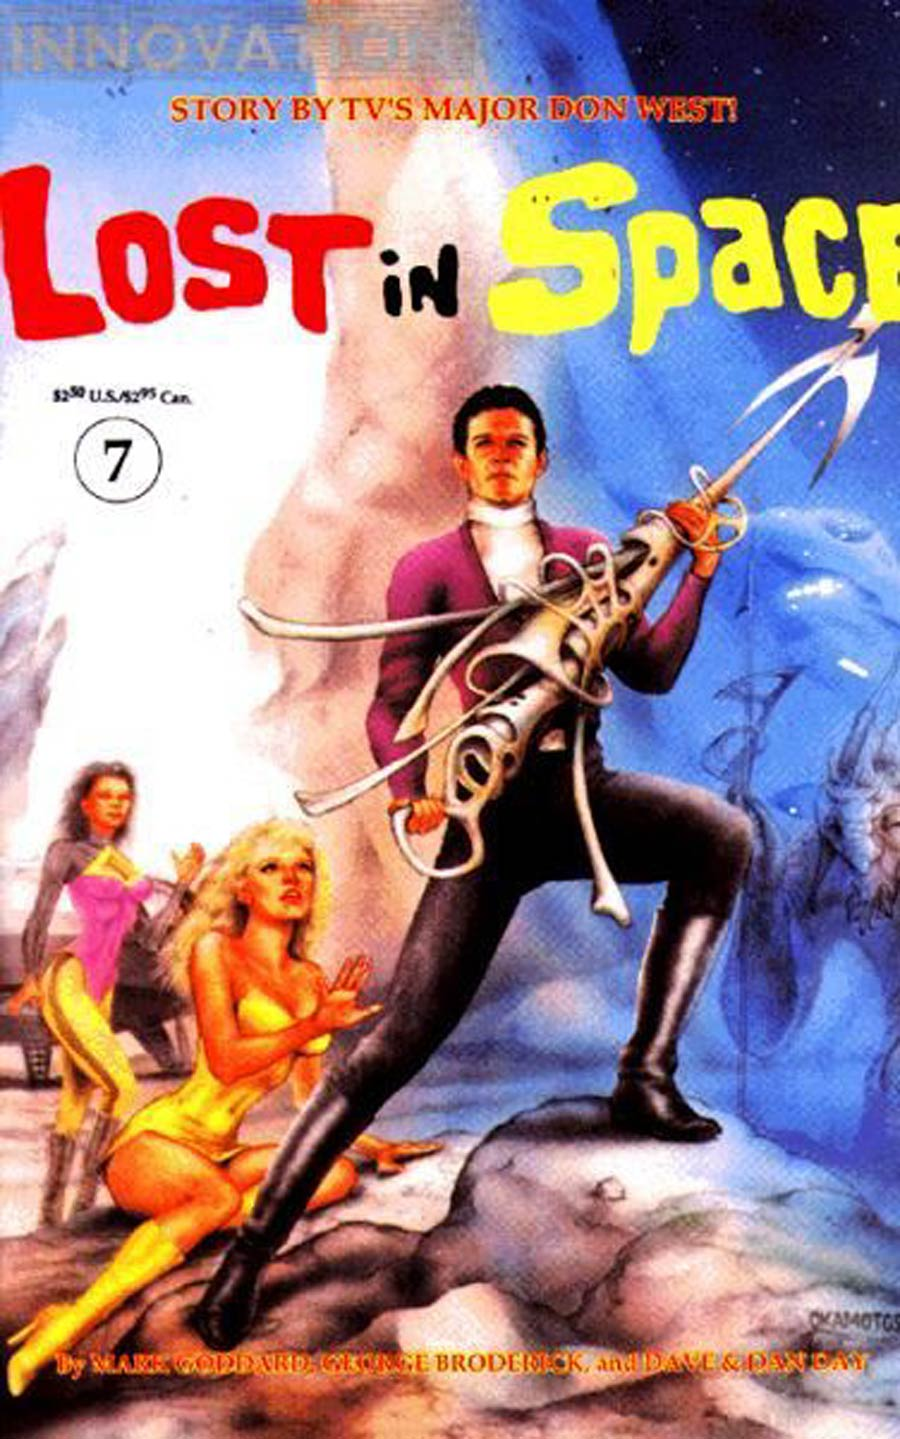 Lost In Space #7